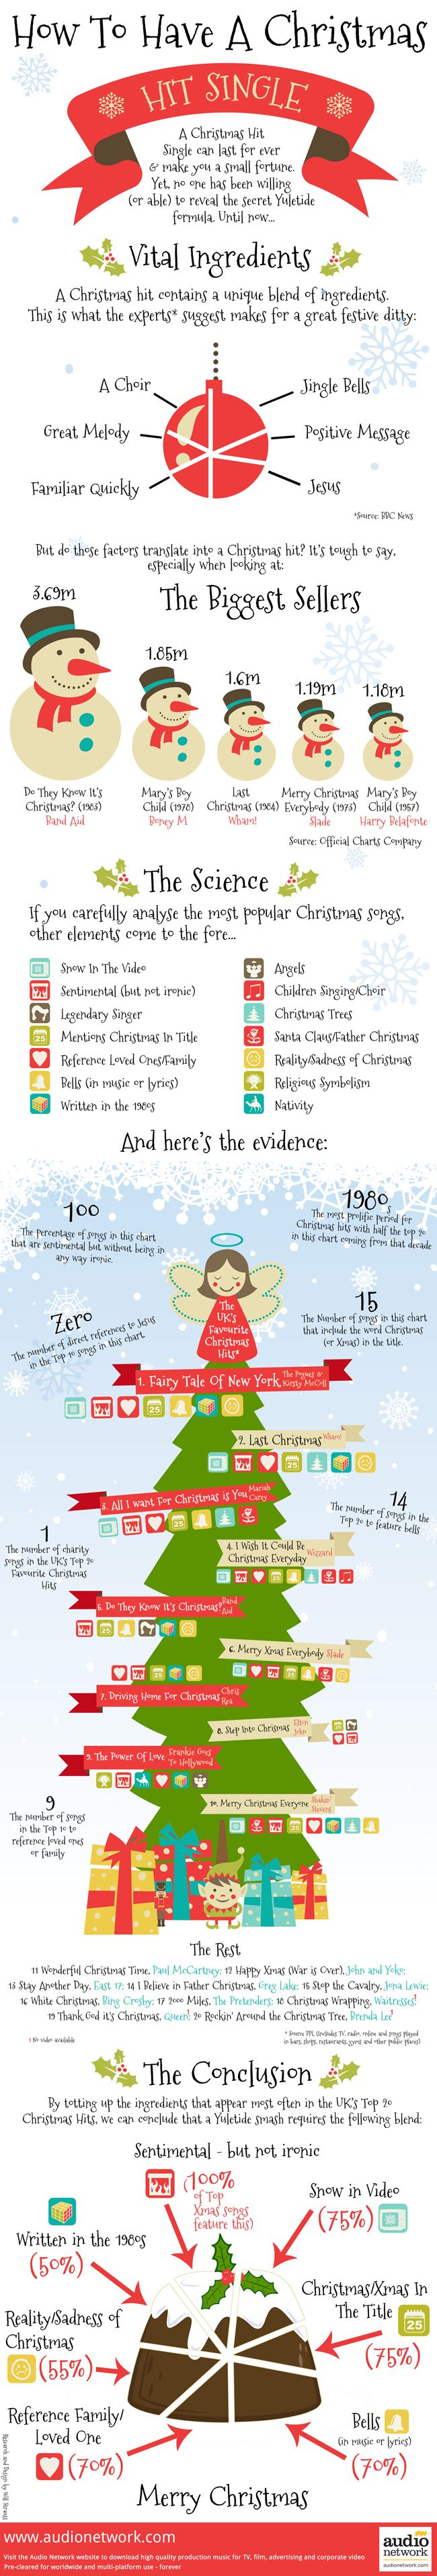 How to have a christmas Hit SIngle #infographic